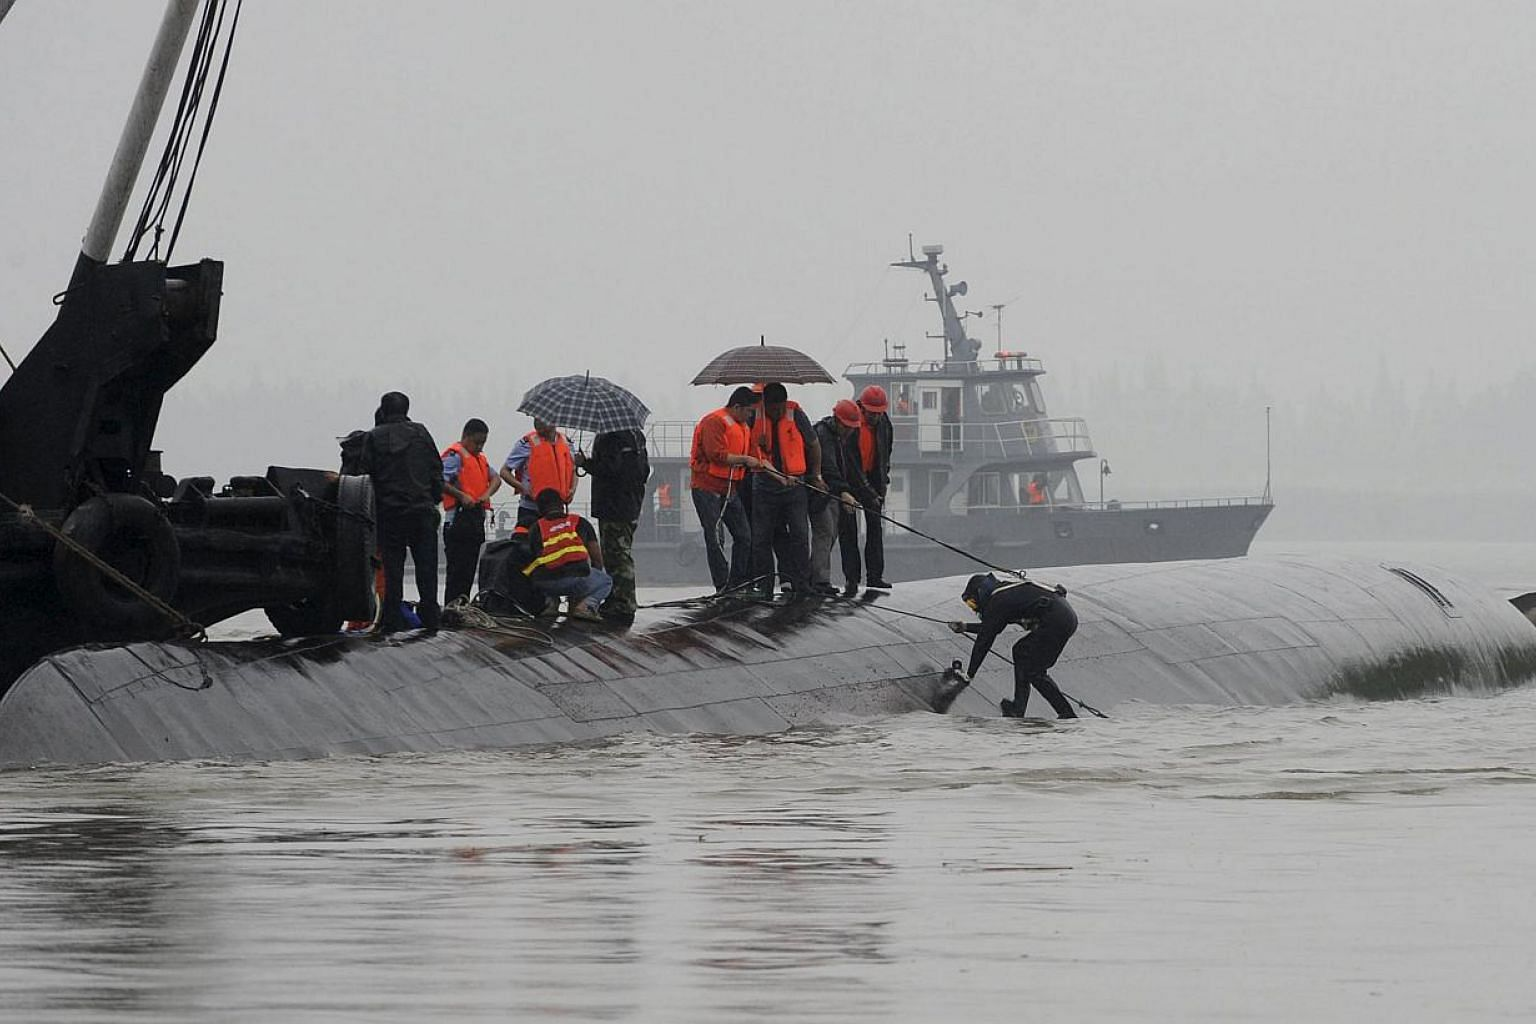 A diver (right) preparing to dive in the river to search for survivors after a ship sank at the Jianli section of the Yangtze River, Hubei province, China, on June 2, 2015. -- PHOTO: REUTERS